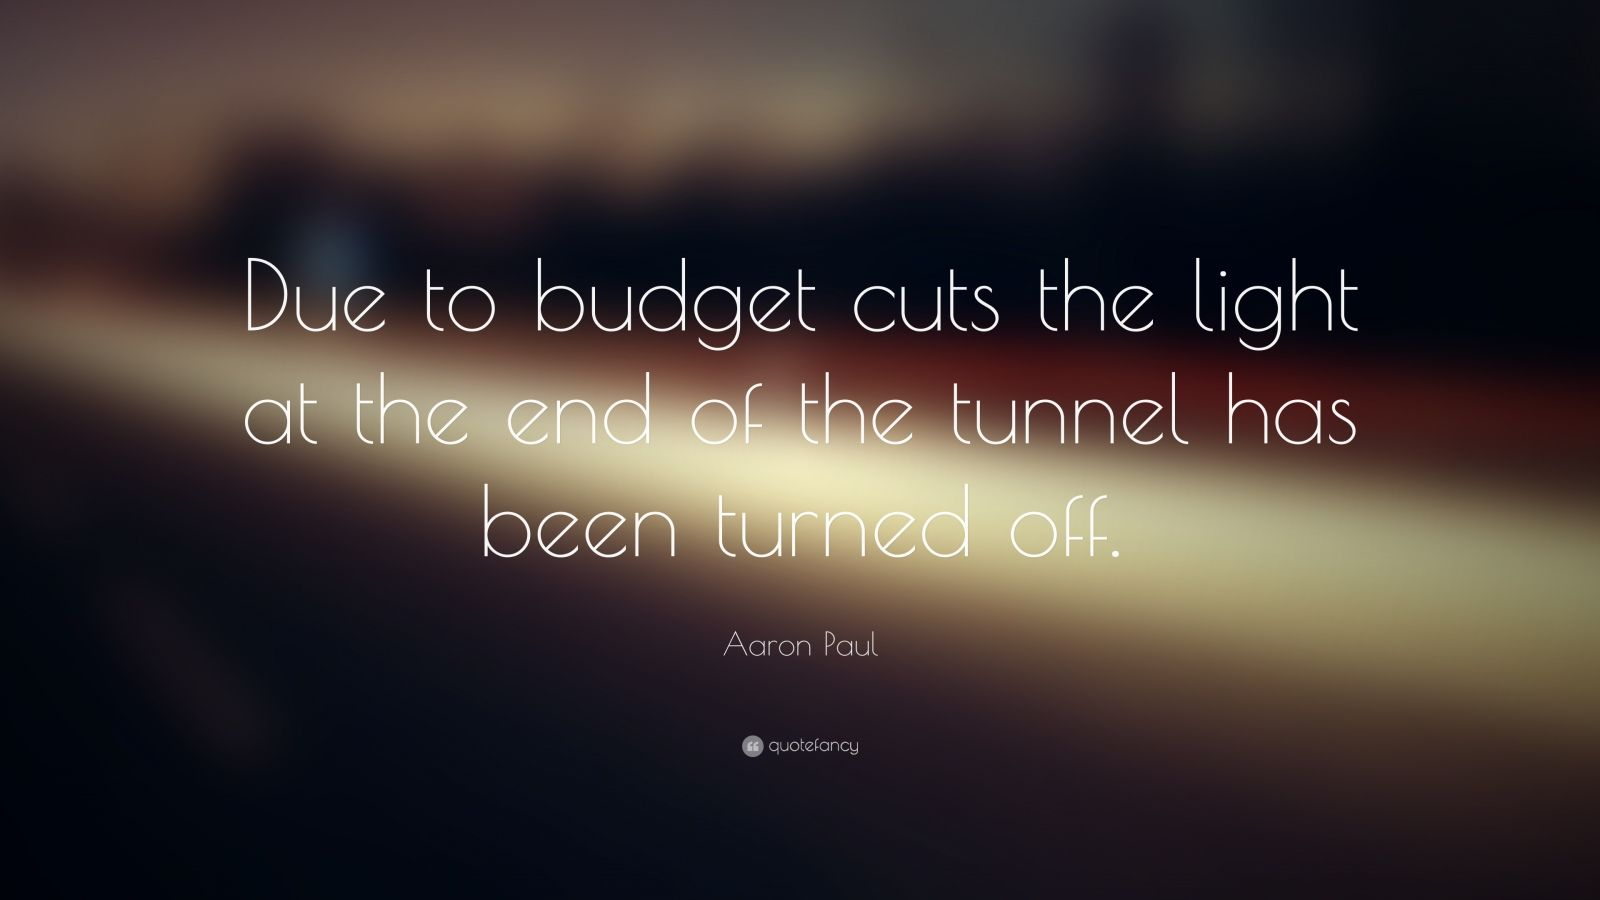 """Aaron Paul Quote: """"Due to budget cuts the light at the end of the tunnel has been turned off."""""""